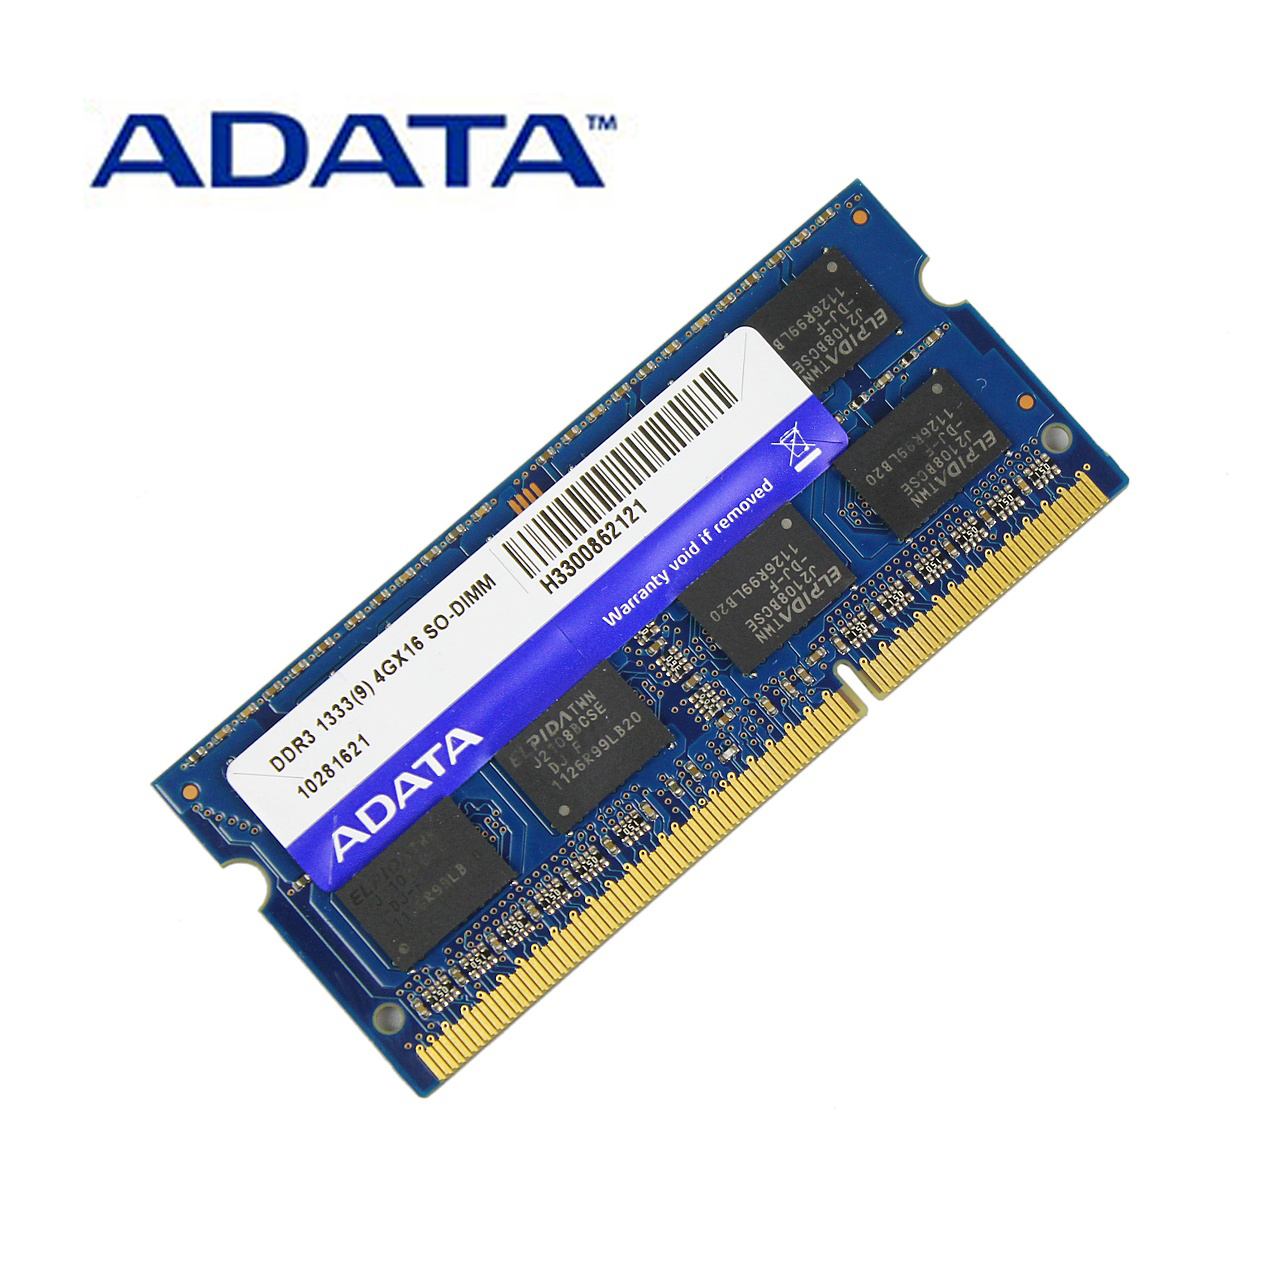 For Samsung 8GB Kits DDR3 1333MHz PC3-10600S 204PIN SO-DIMM Laptop RAM Memory #1